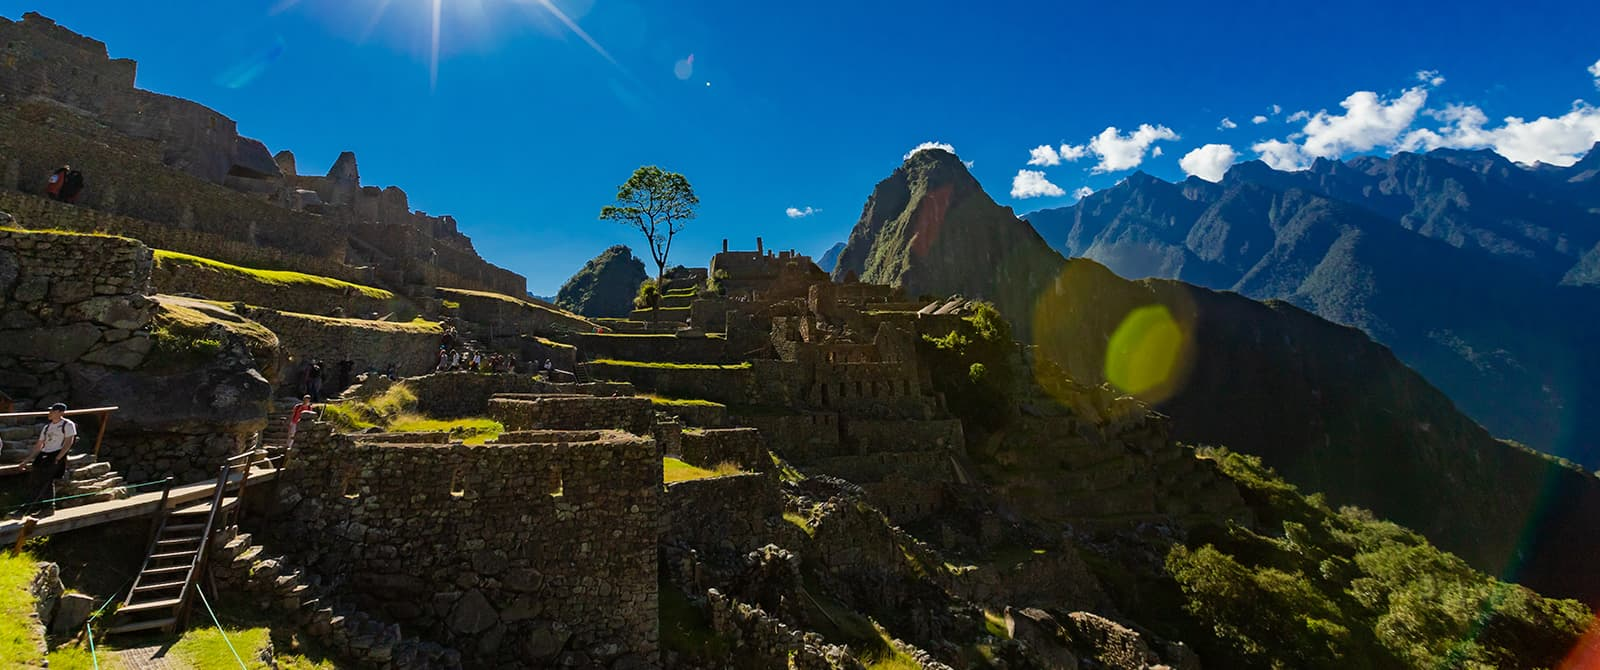 Machu Picchu - World Heritage Site